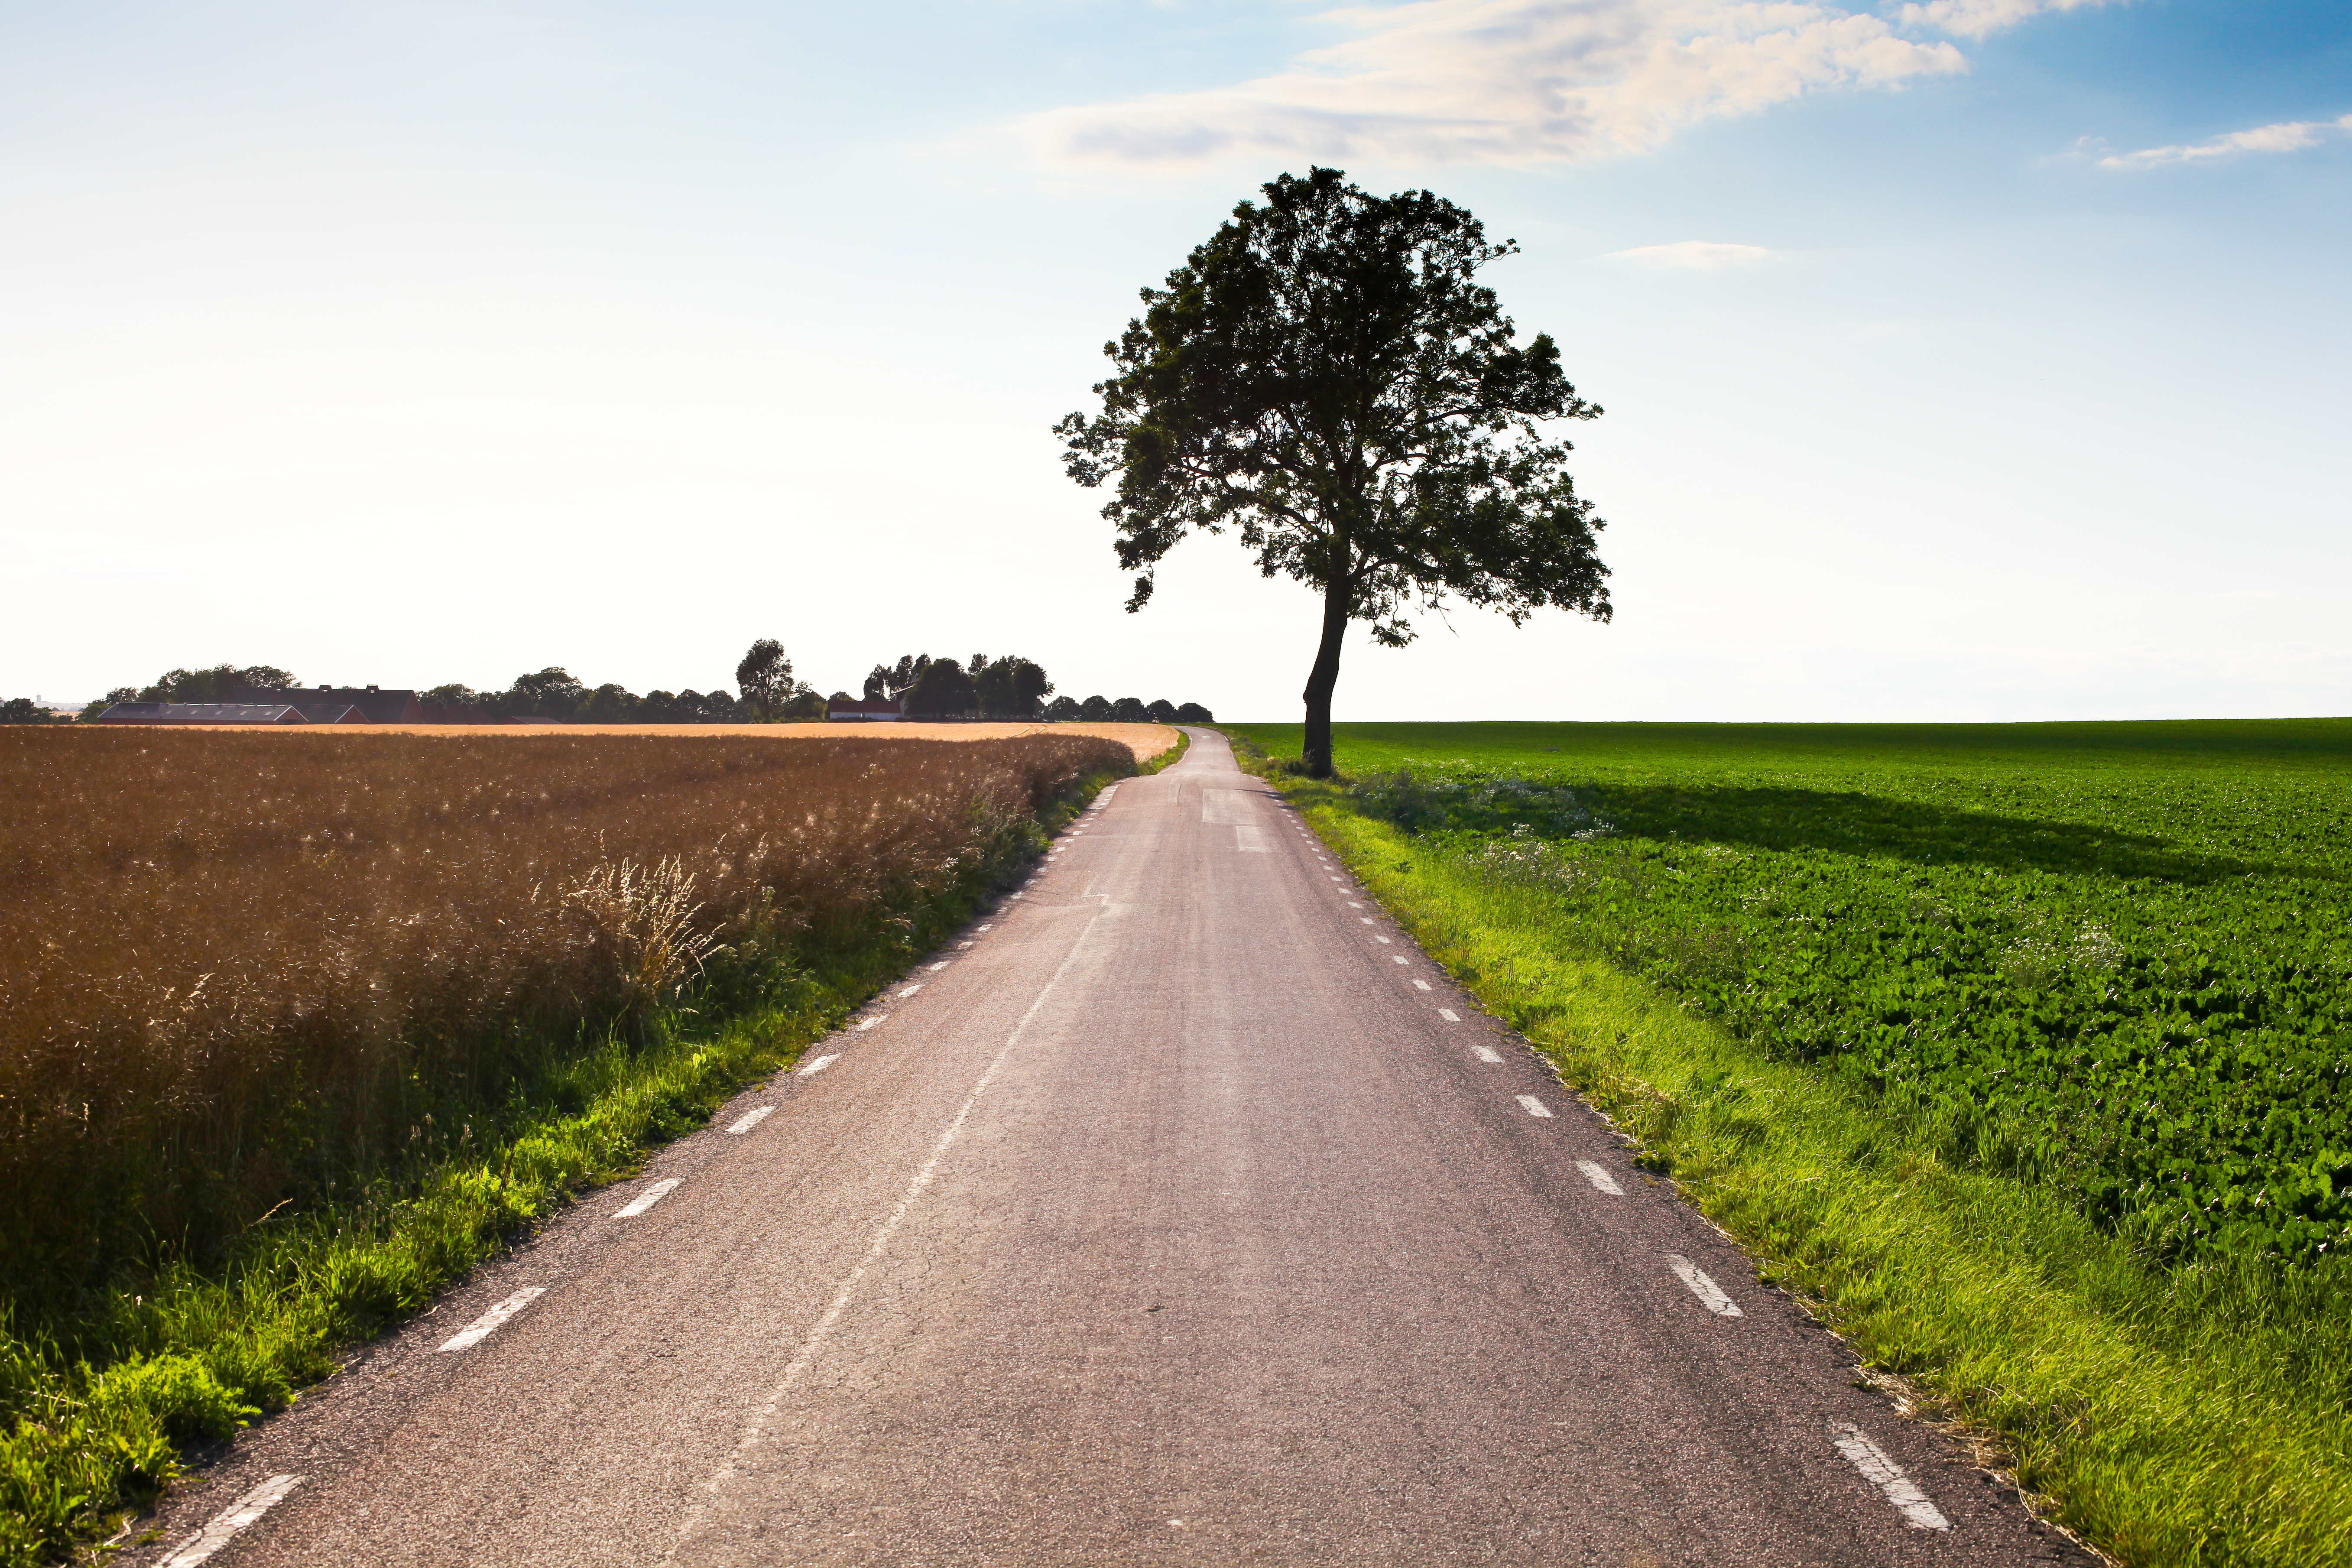 Lonely road, lonely tree | photo page - everystockphoto